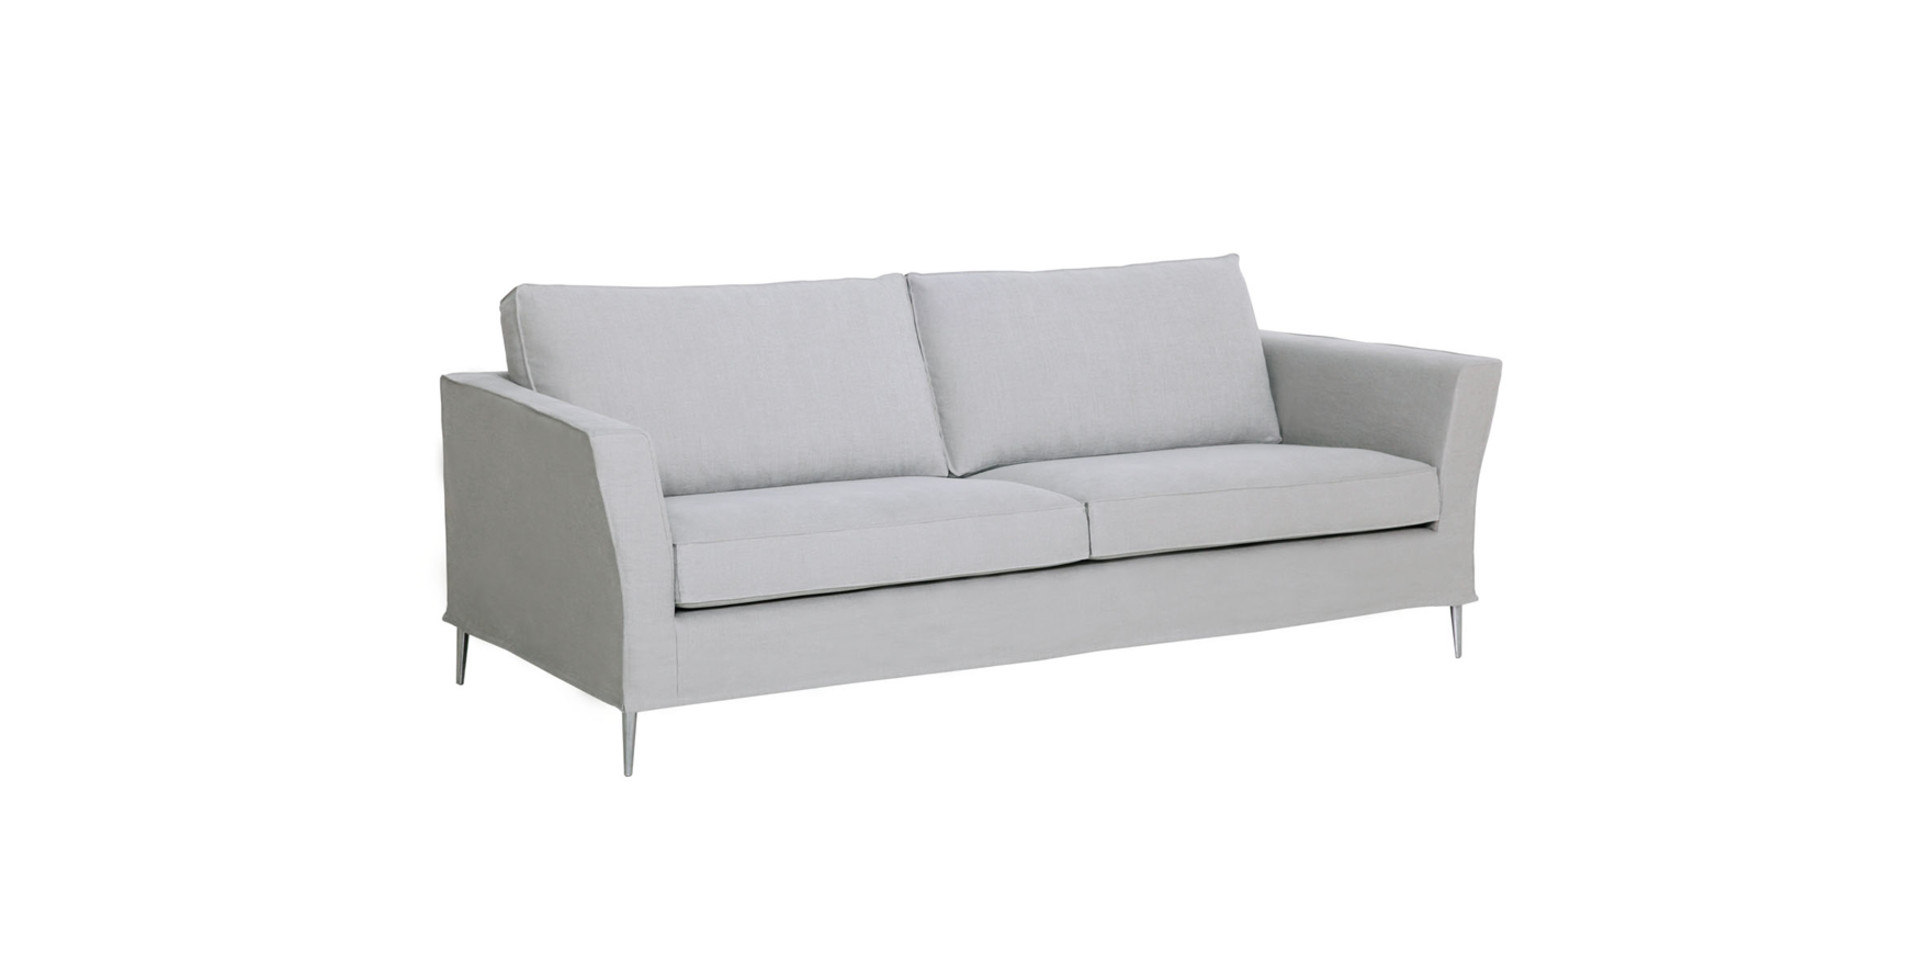 sits-caprice-canape-3seater_caleido3790_light_beige_2